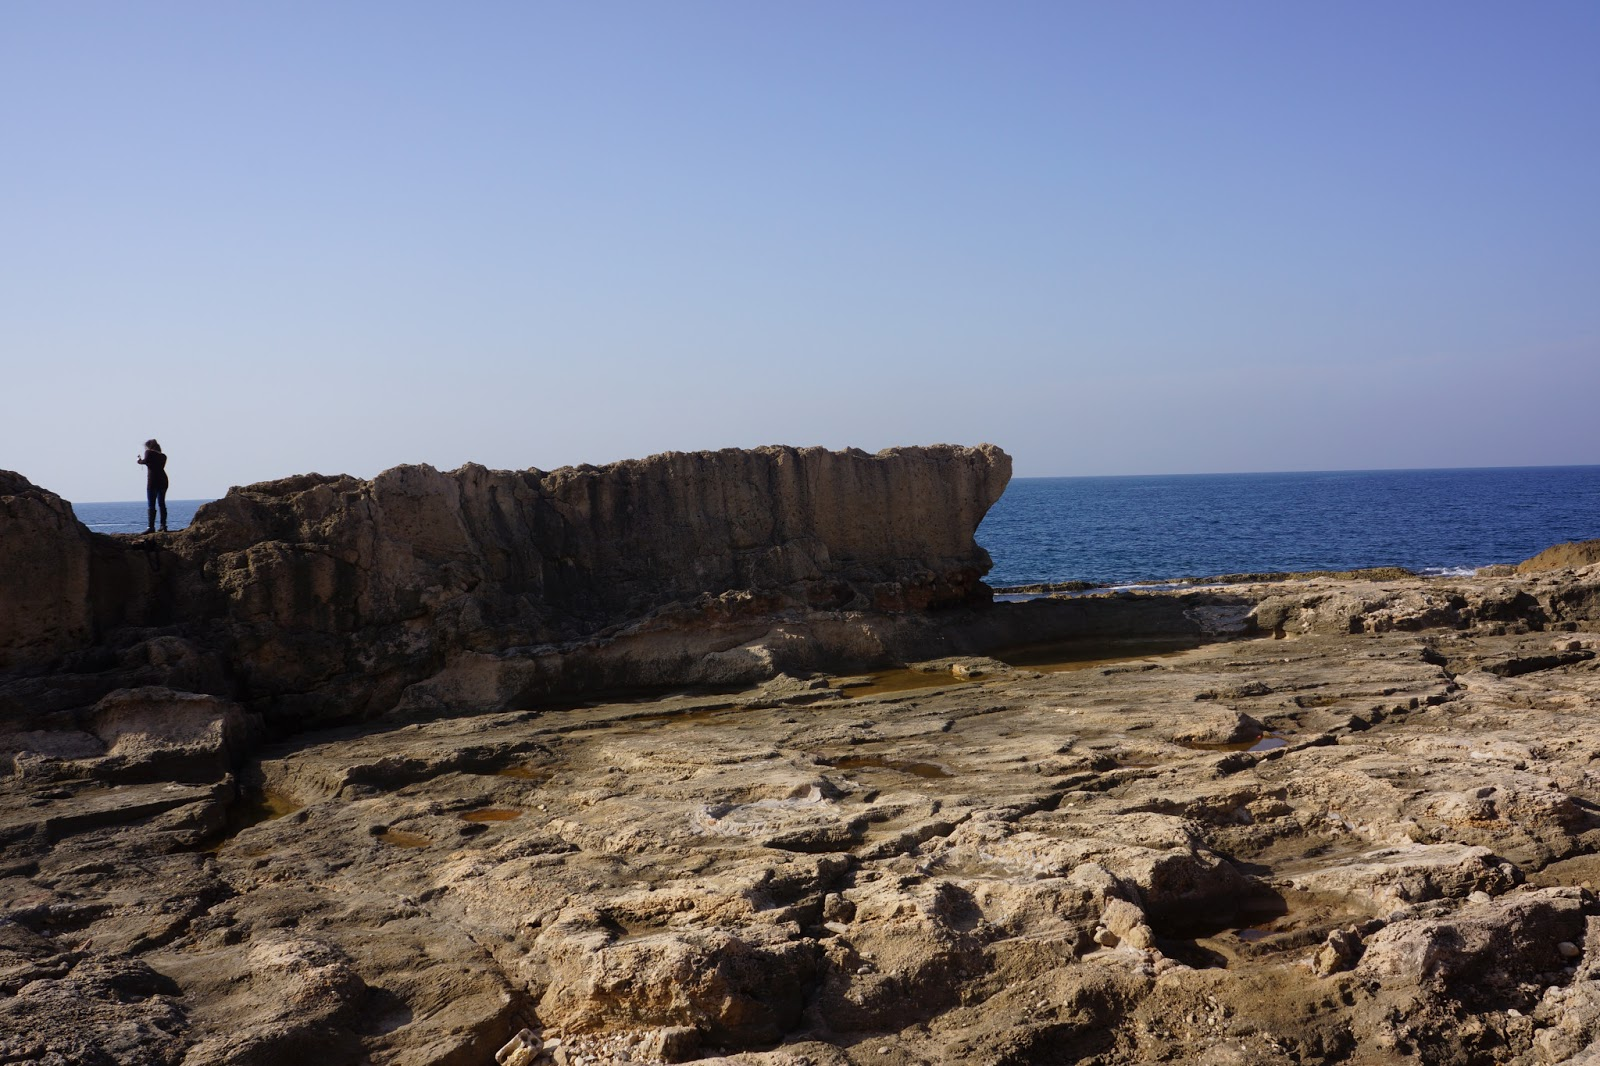 Picture of the Phoencian maritime wall. Batroun, Lebanon.